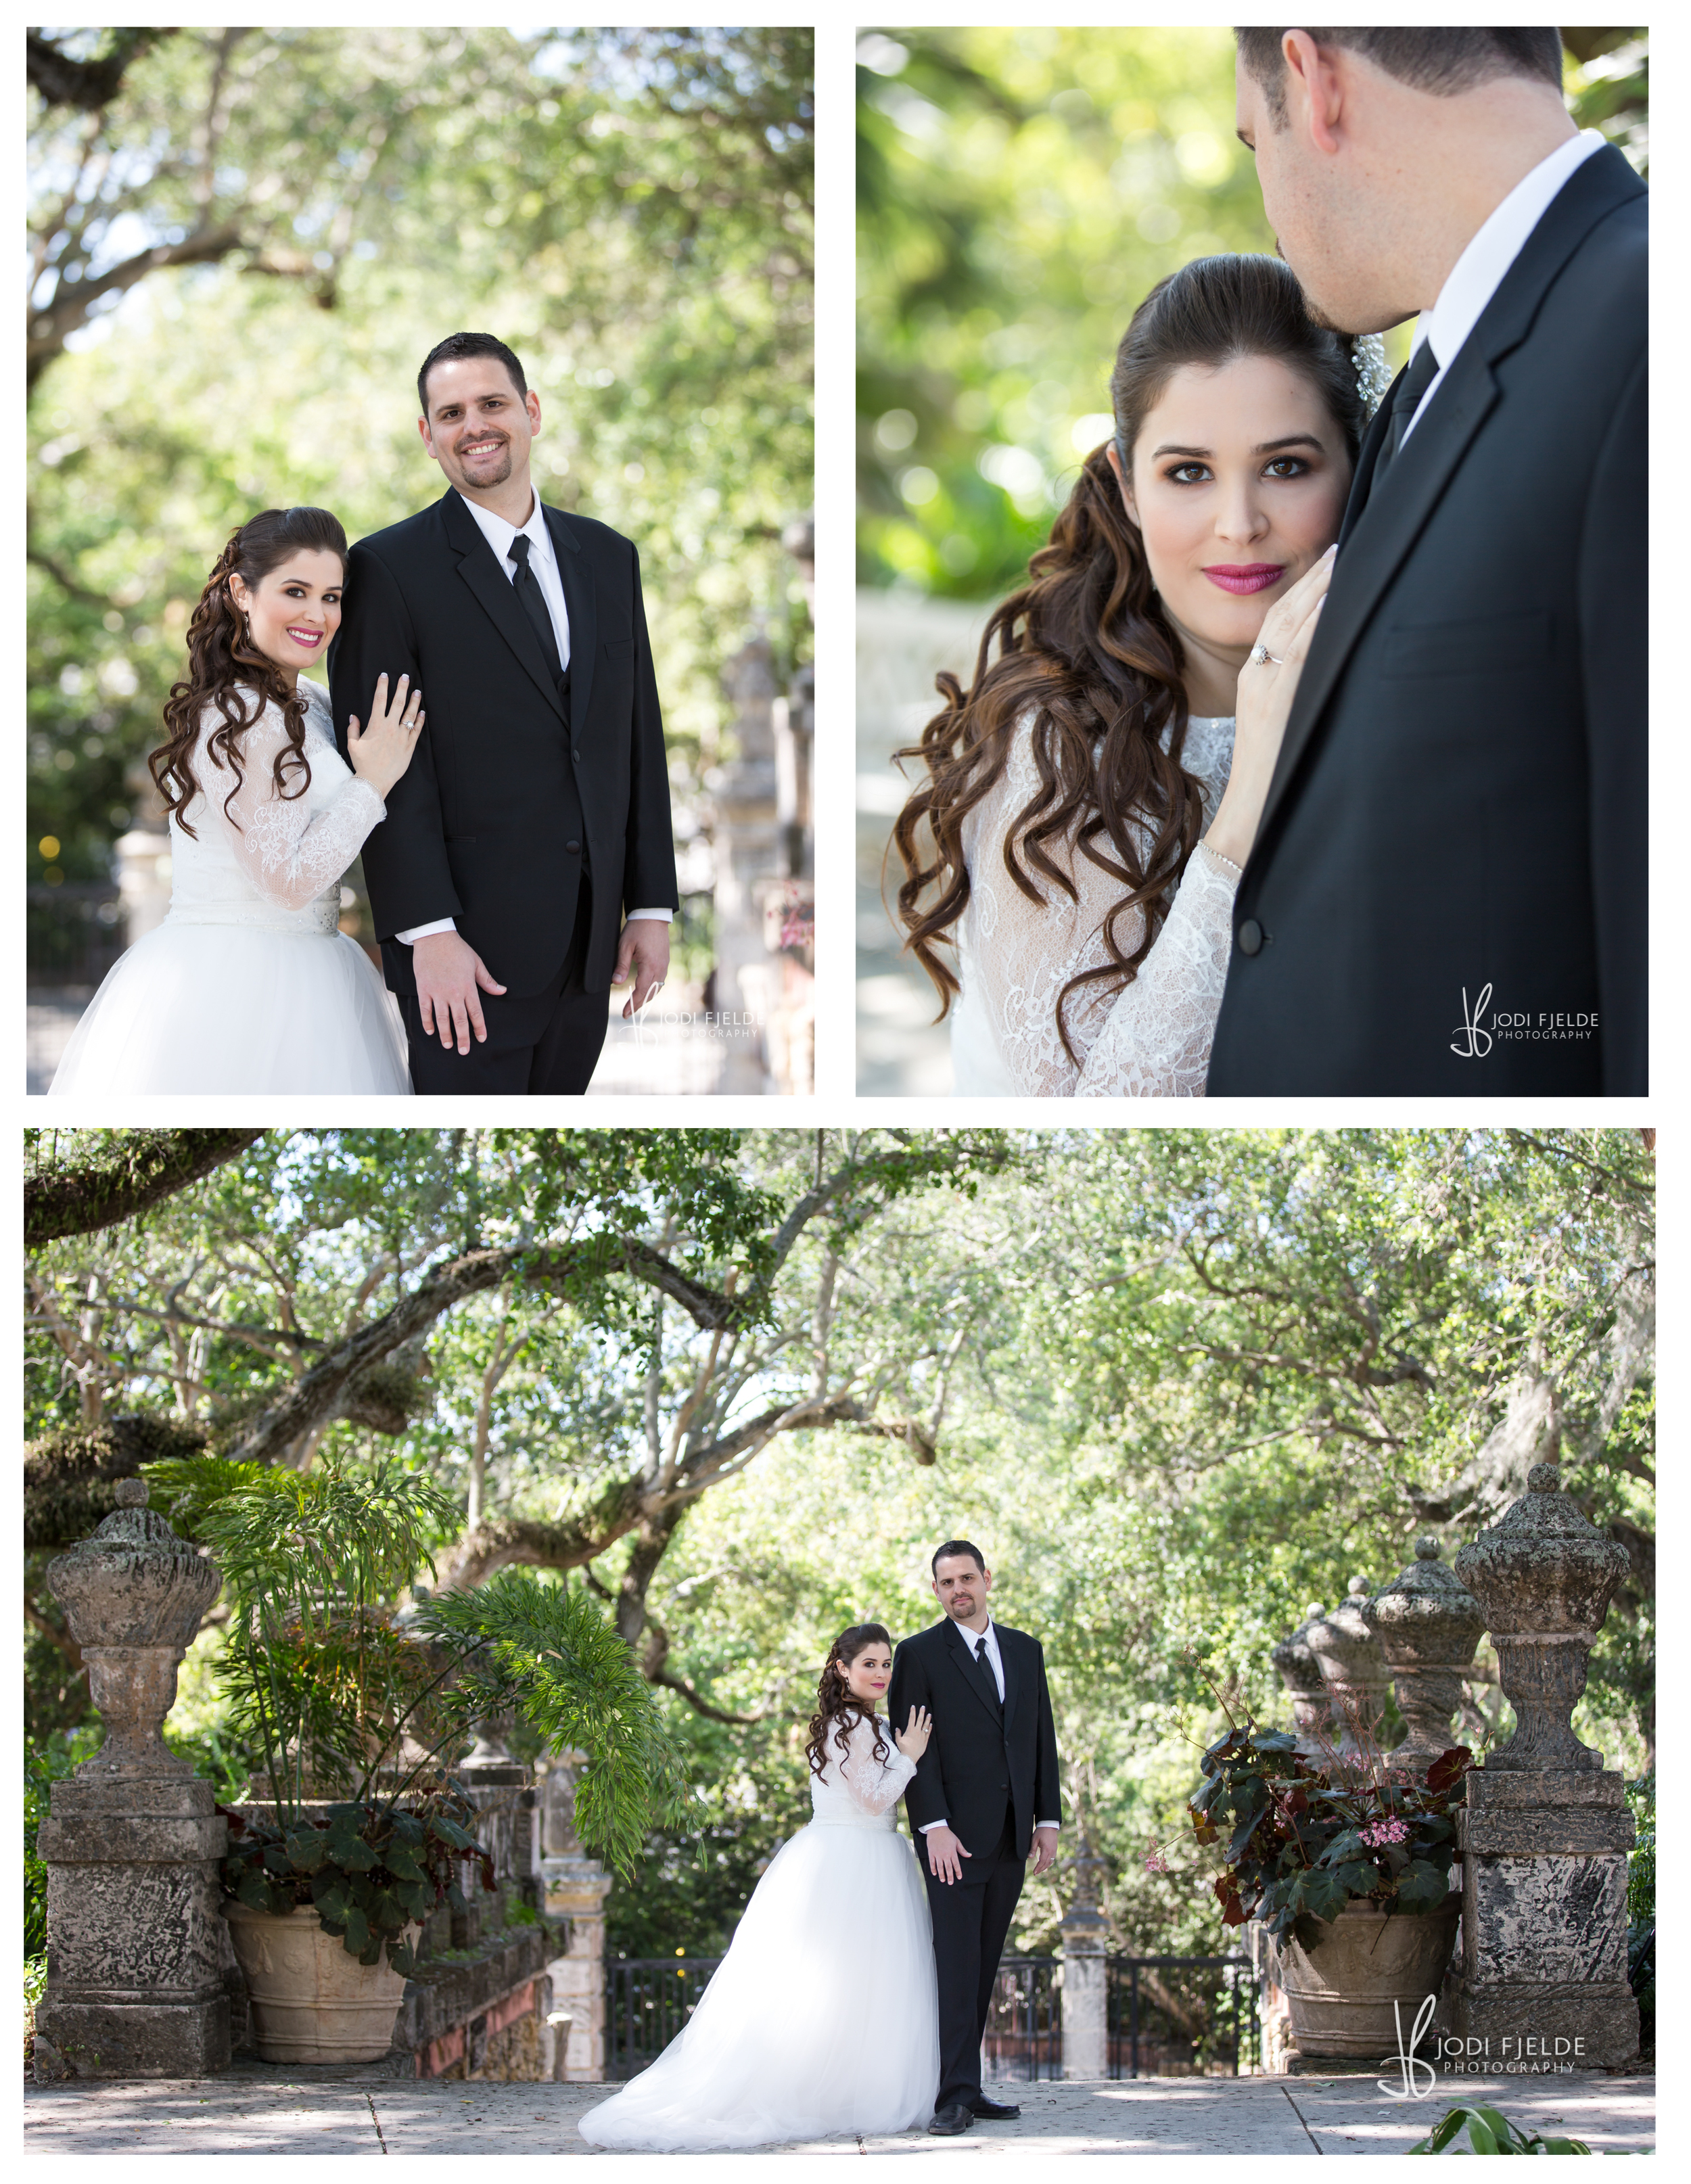 Vizcaya_Miami_Florida_Bridal_Wedding_Portraits_Jodi_Fjelde_Photography-5.jpg